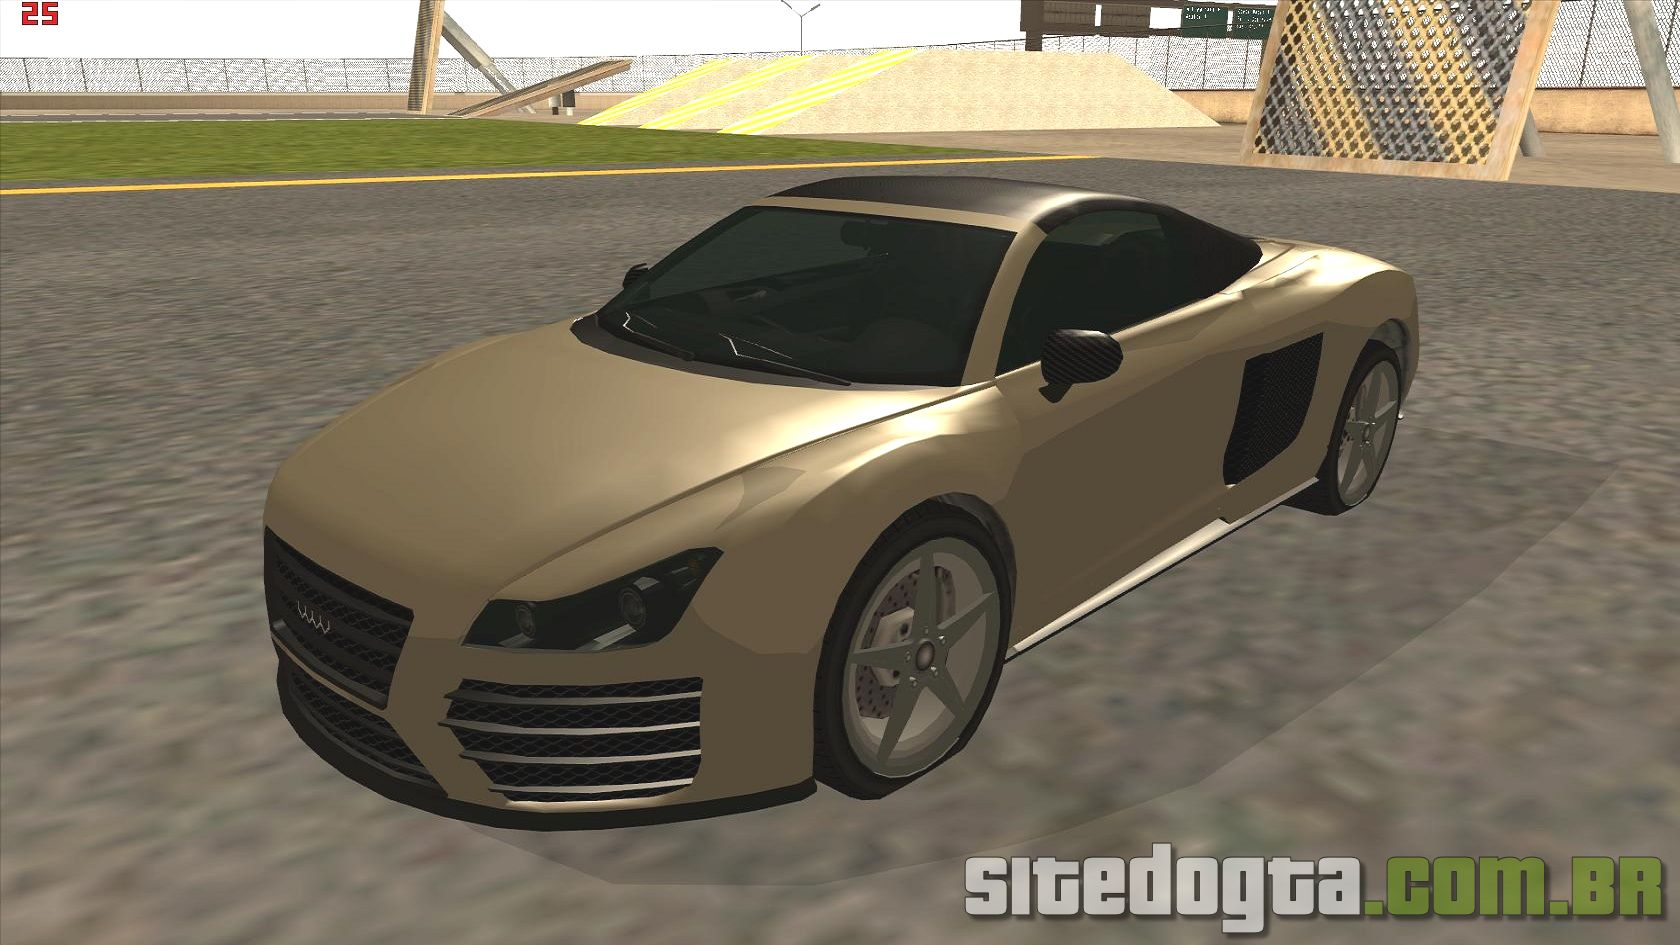 Obey 9f Cabrio do GTA V para GTA San Andreas | Site do GTA